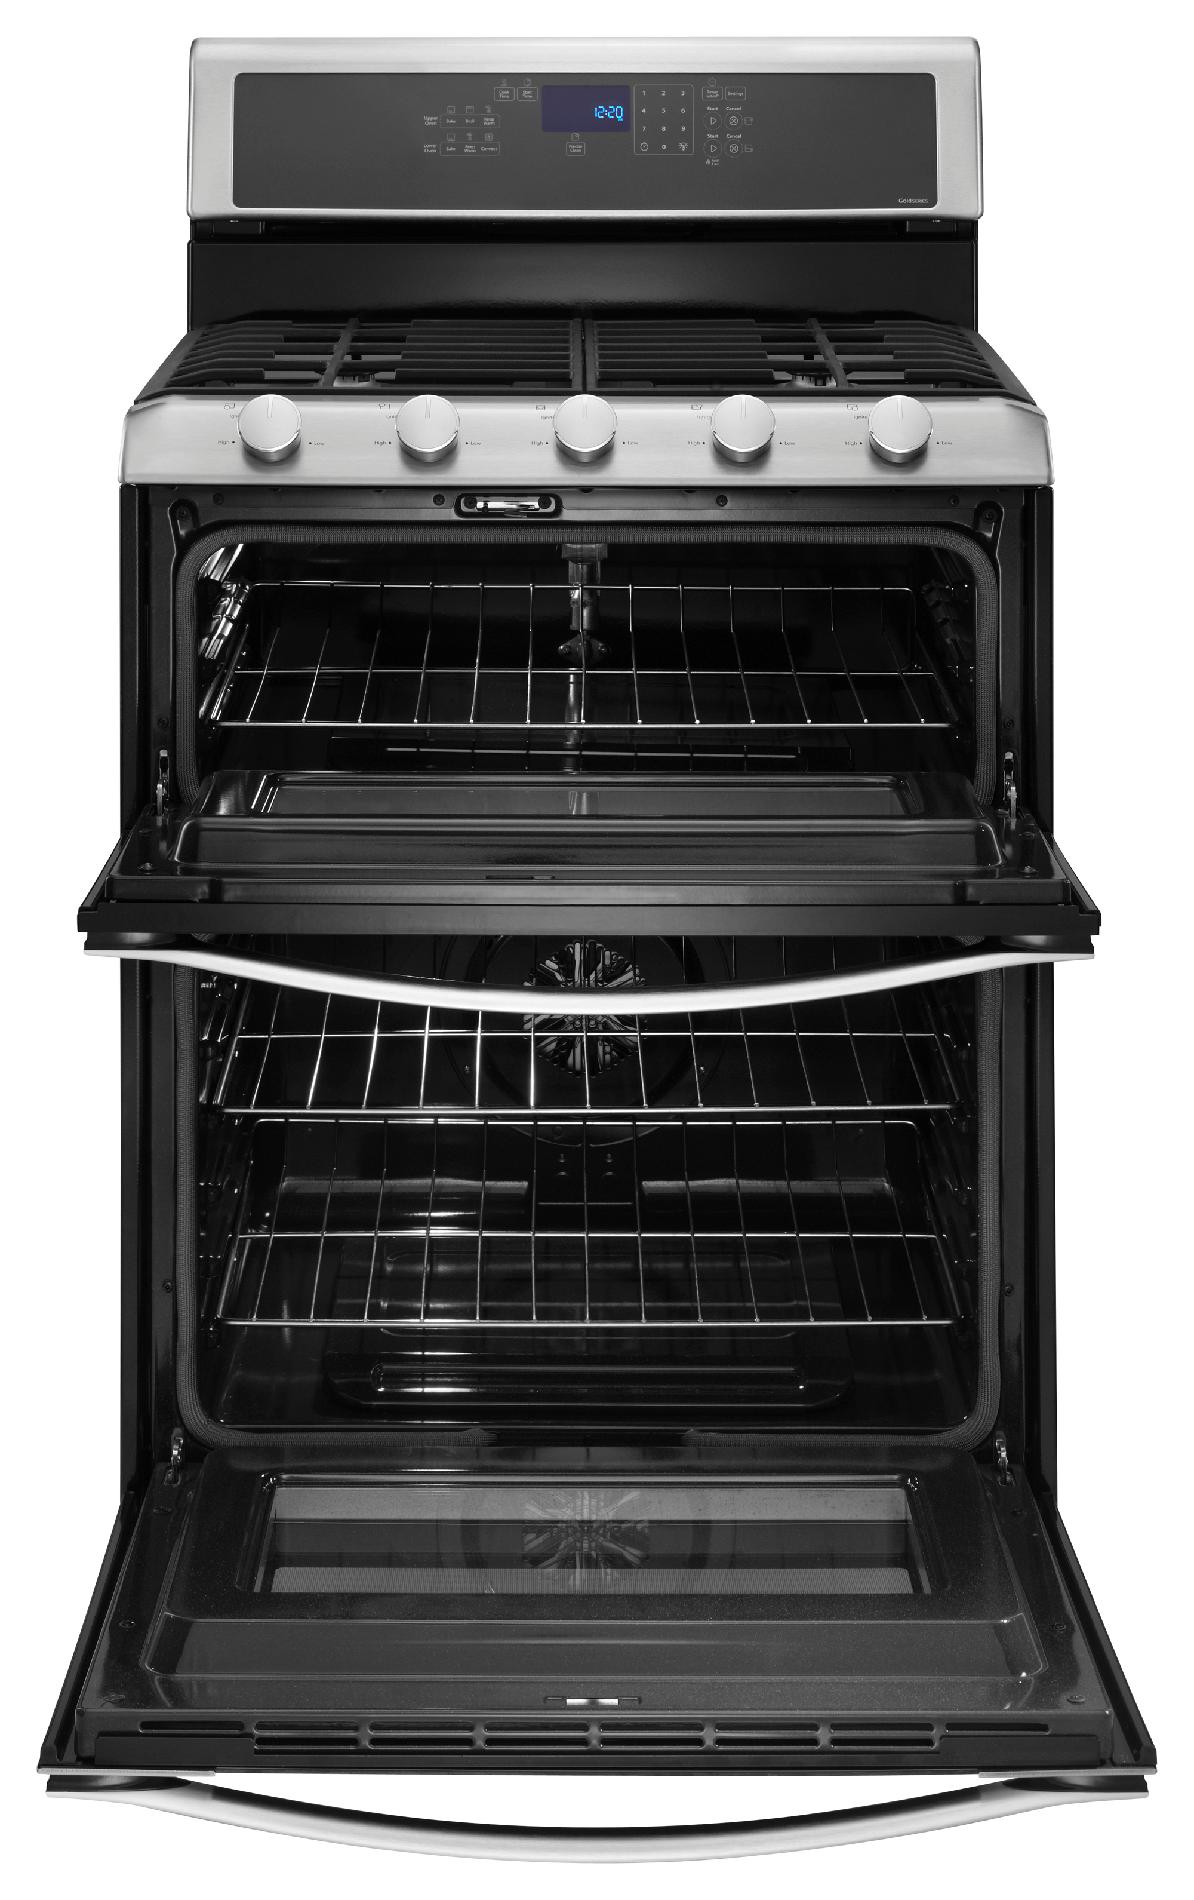 Whirlpool WGG755S0BS 3.9 cu. ft. Gas Range w/ TimeSavor™ Convection Cooking - Stainless Steel